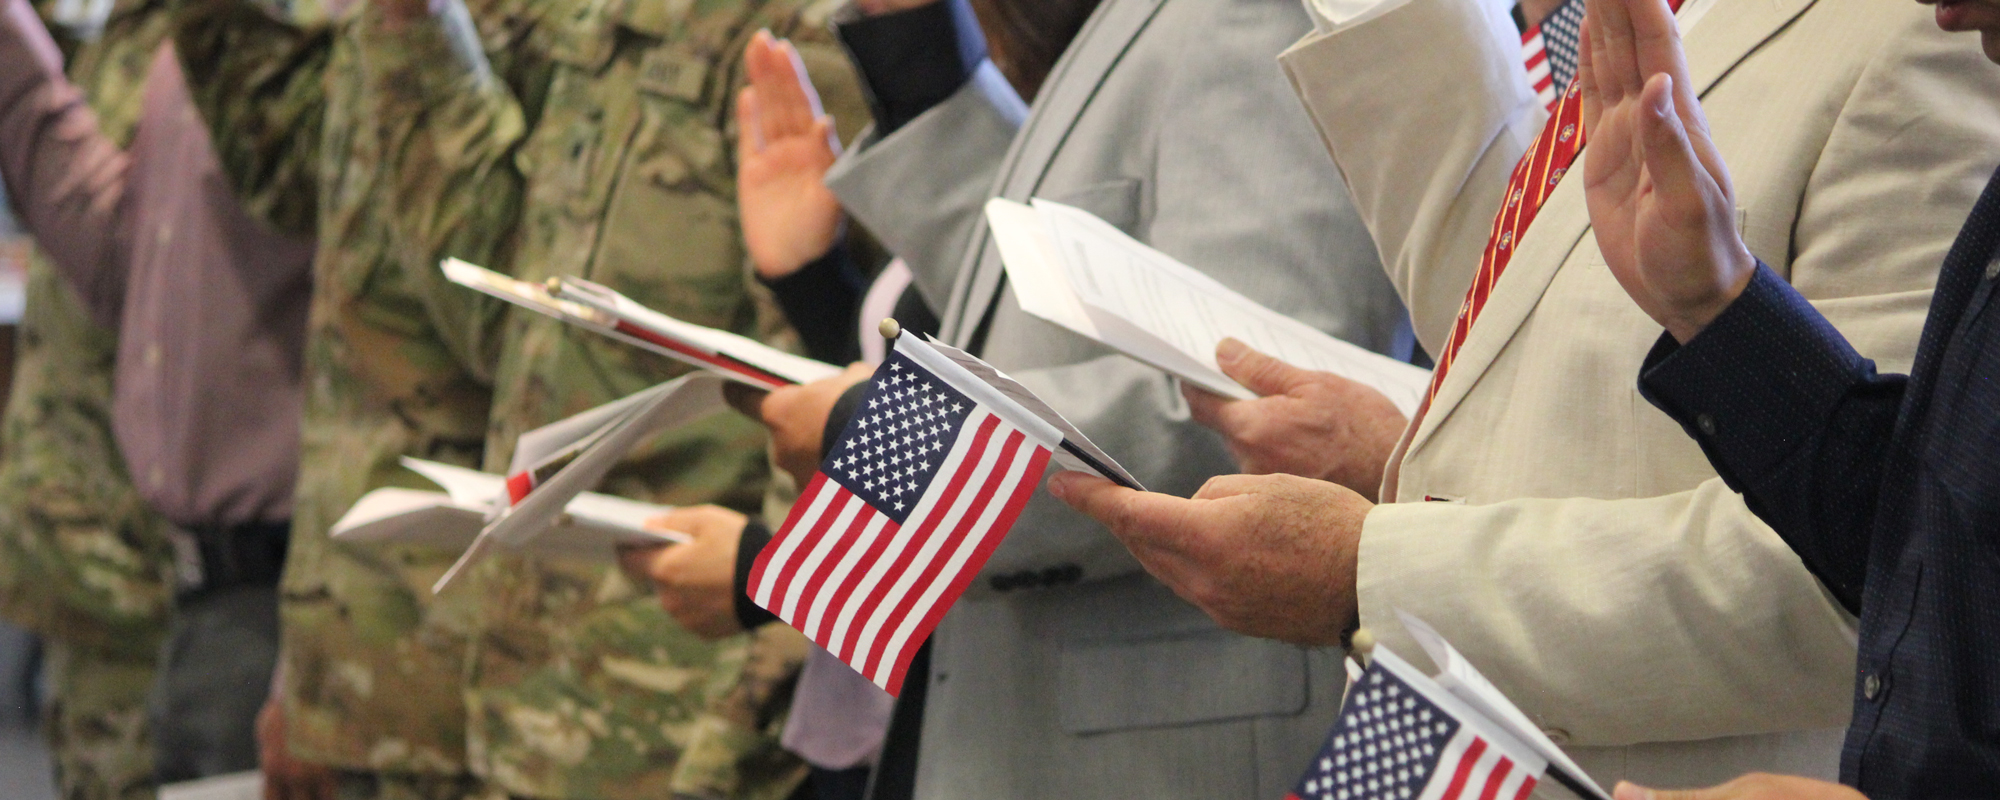 People raise their hands and hold U.S. flags at a U.S. citizen naturalization ceremony